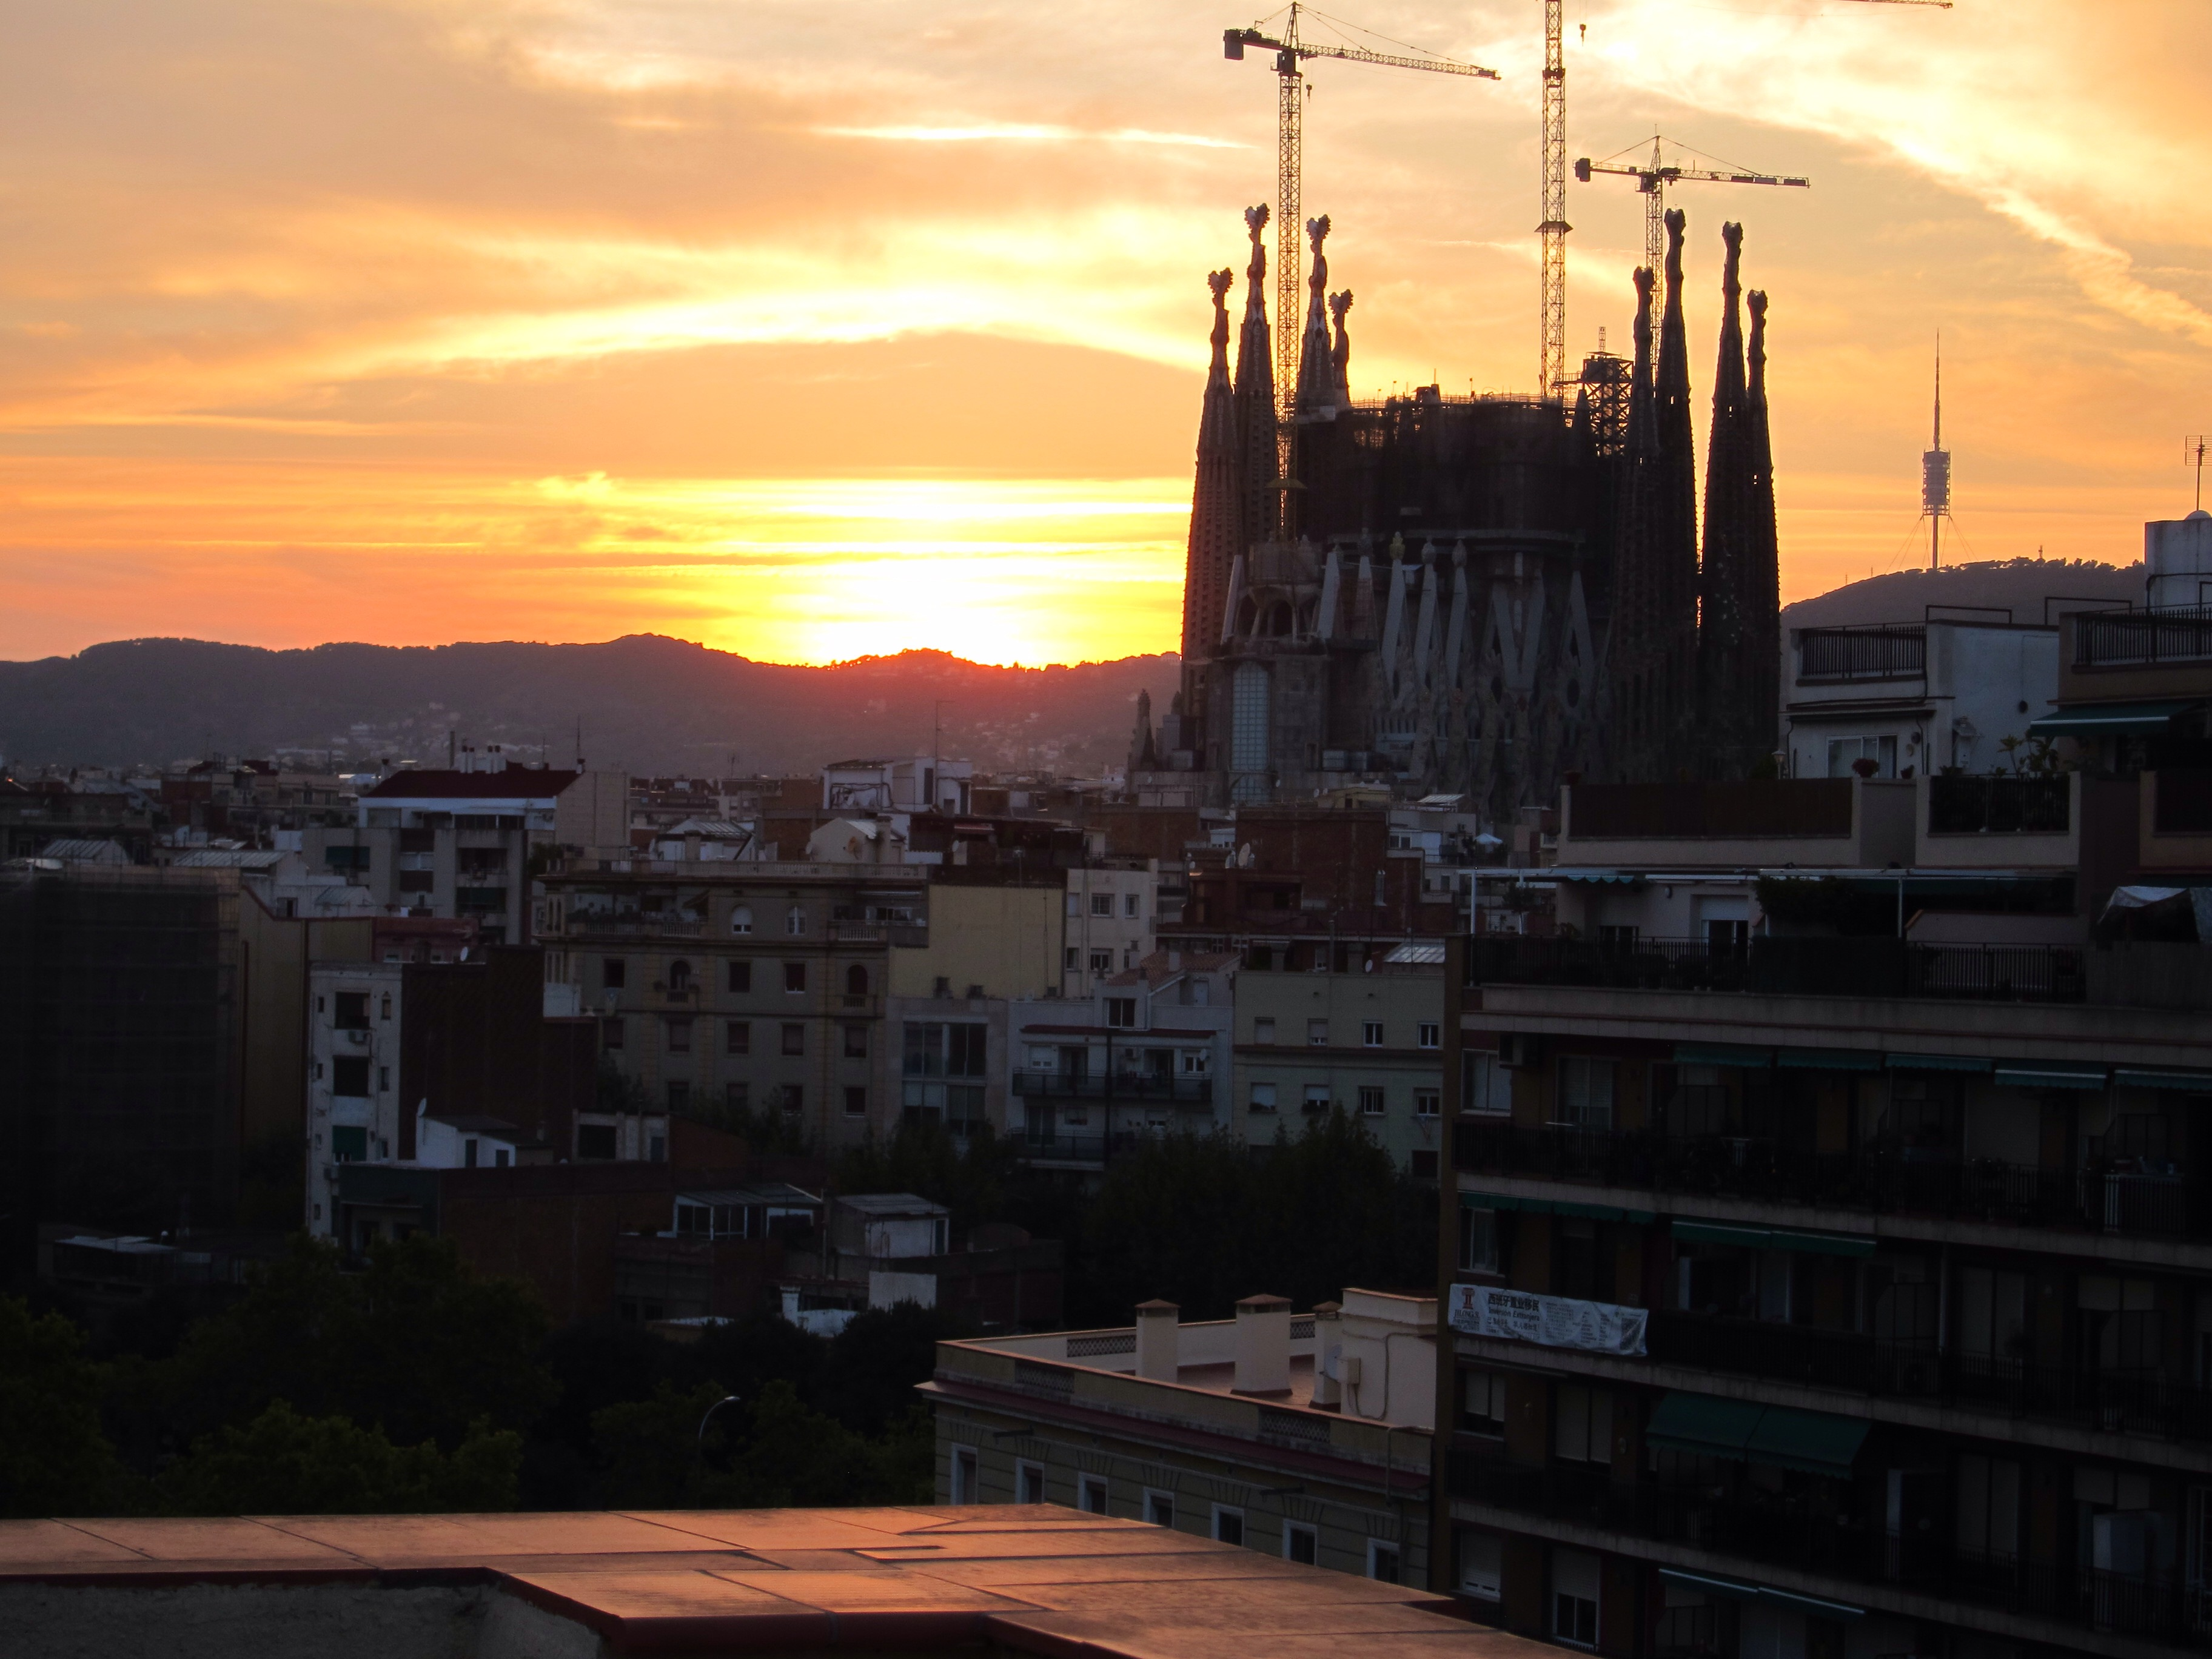 View from the balcony of the Sagrada Familia.